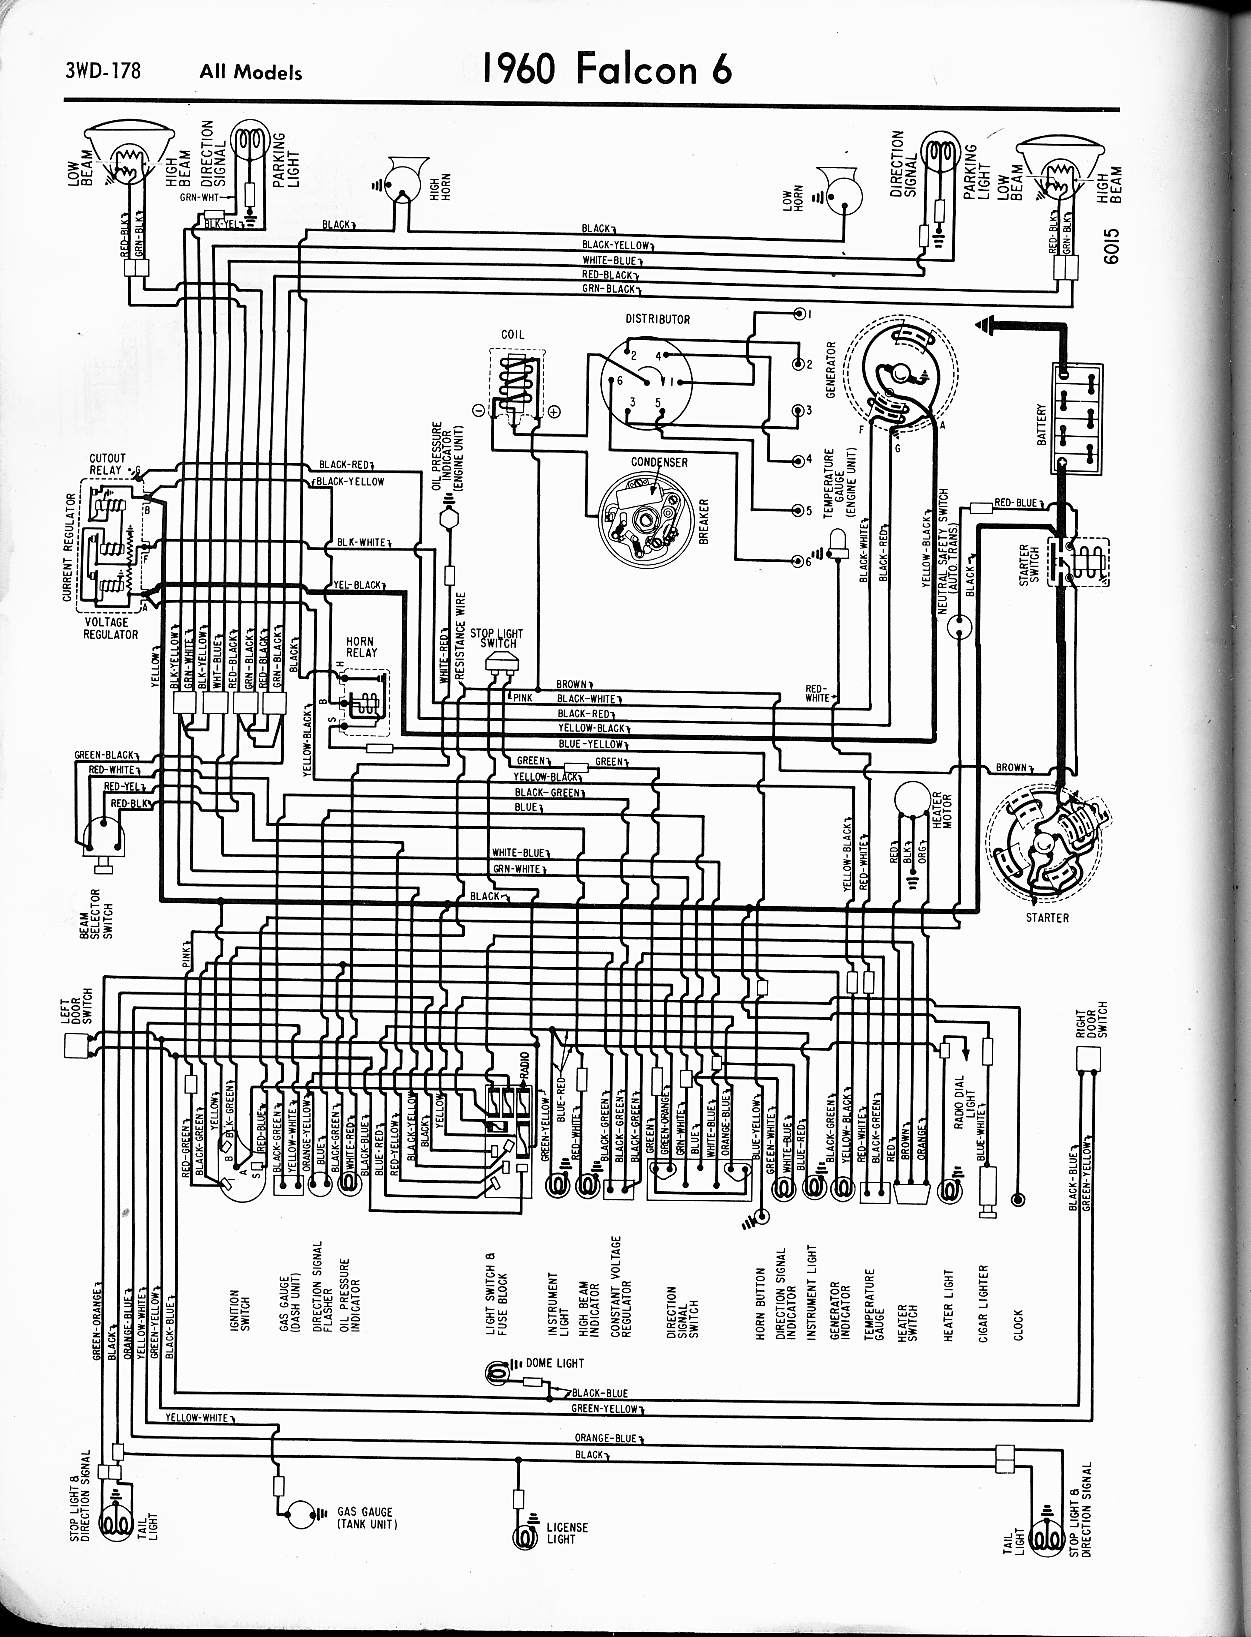 1959 ford wiring diagram wiring diagram todays59 ford wiring diagram wiring diagrams 1930 ford wiring diagram 1959 ford wiring diagram